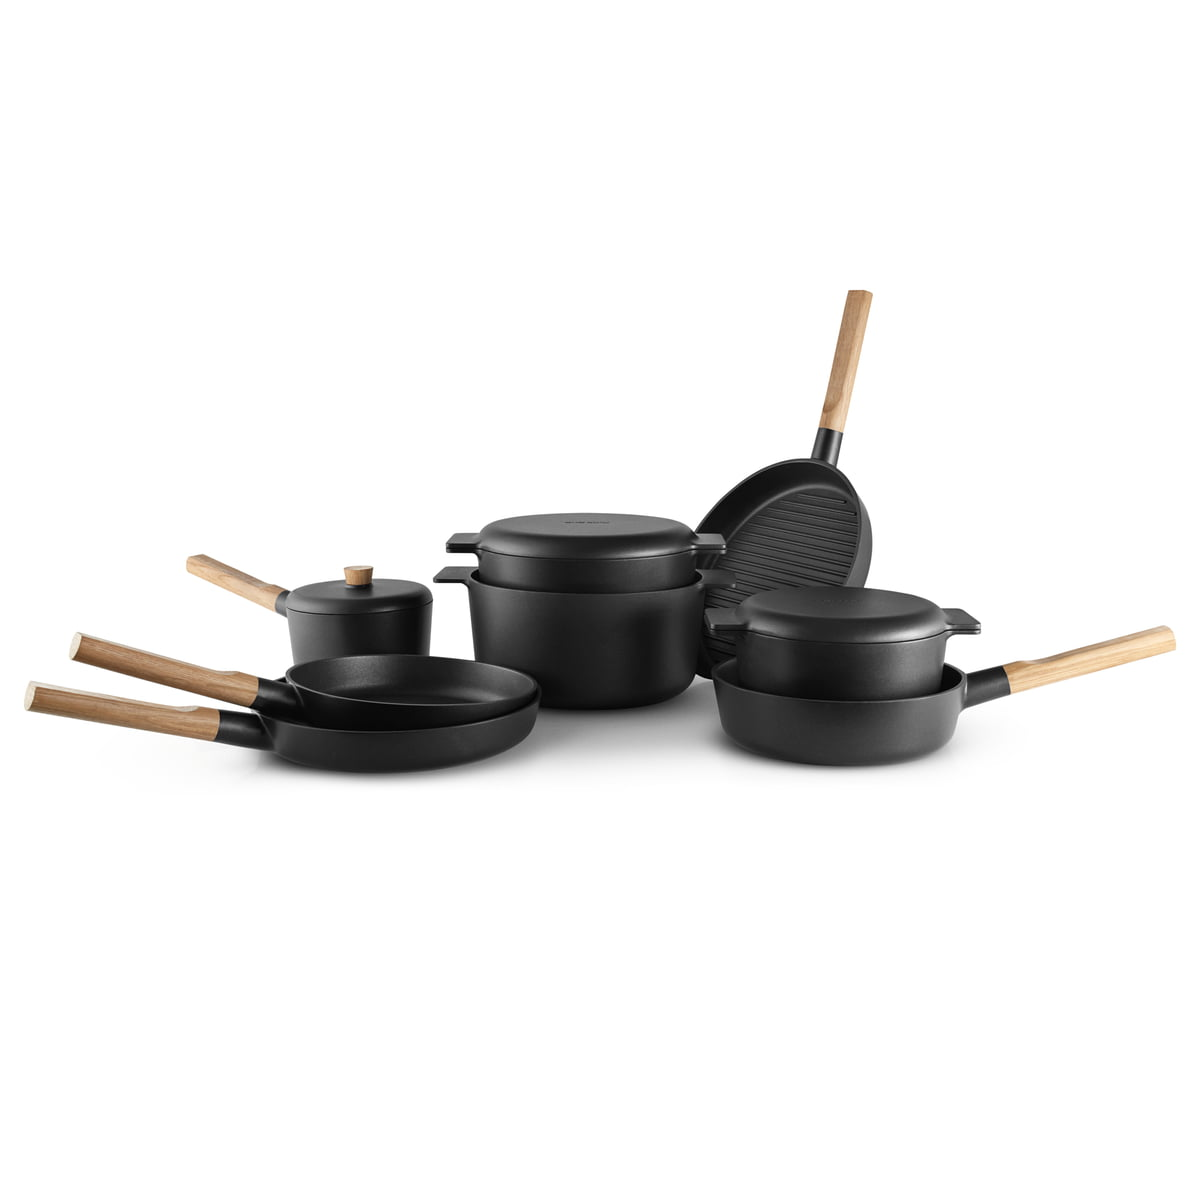 nordic kitchen saucepan by eva solo. Black Bedroom Furniture Sets. Home Design Ideas